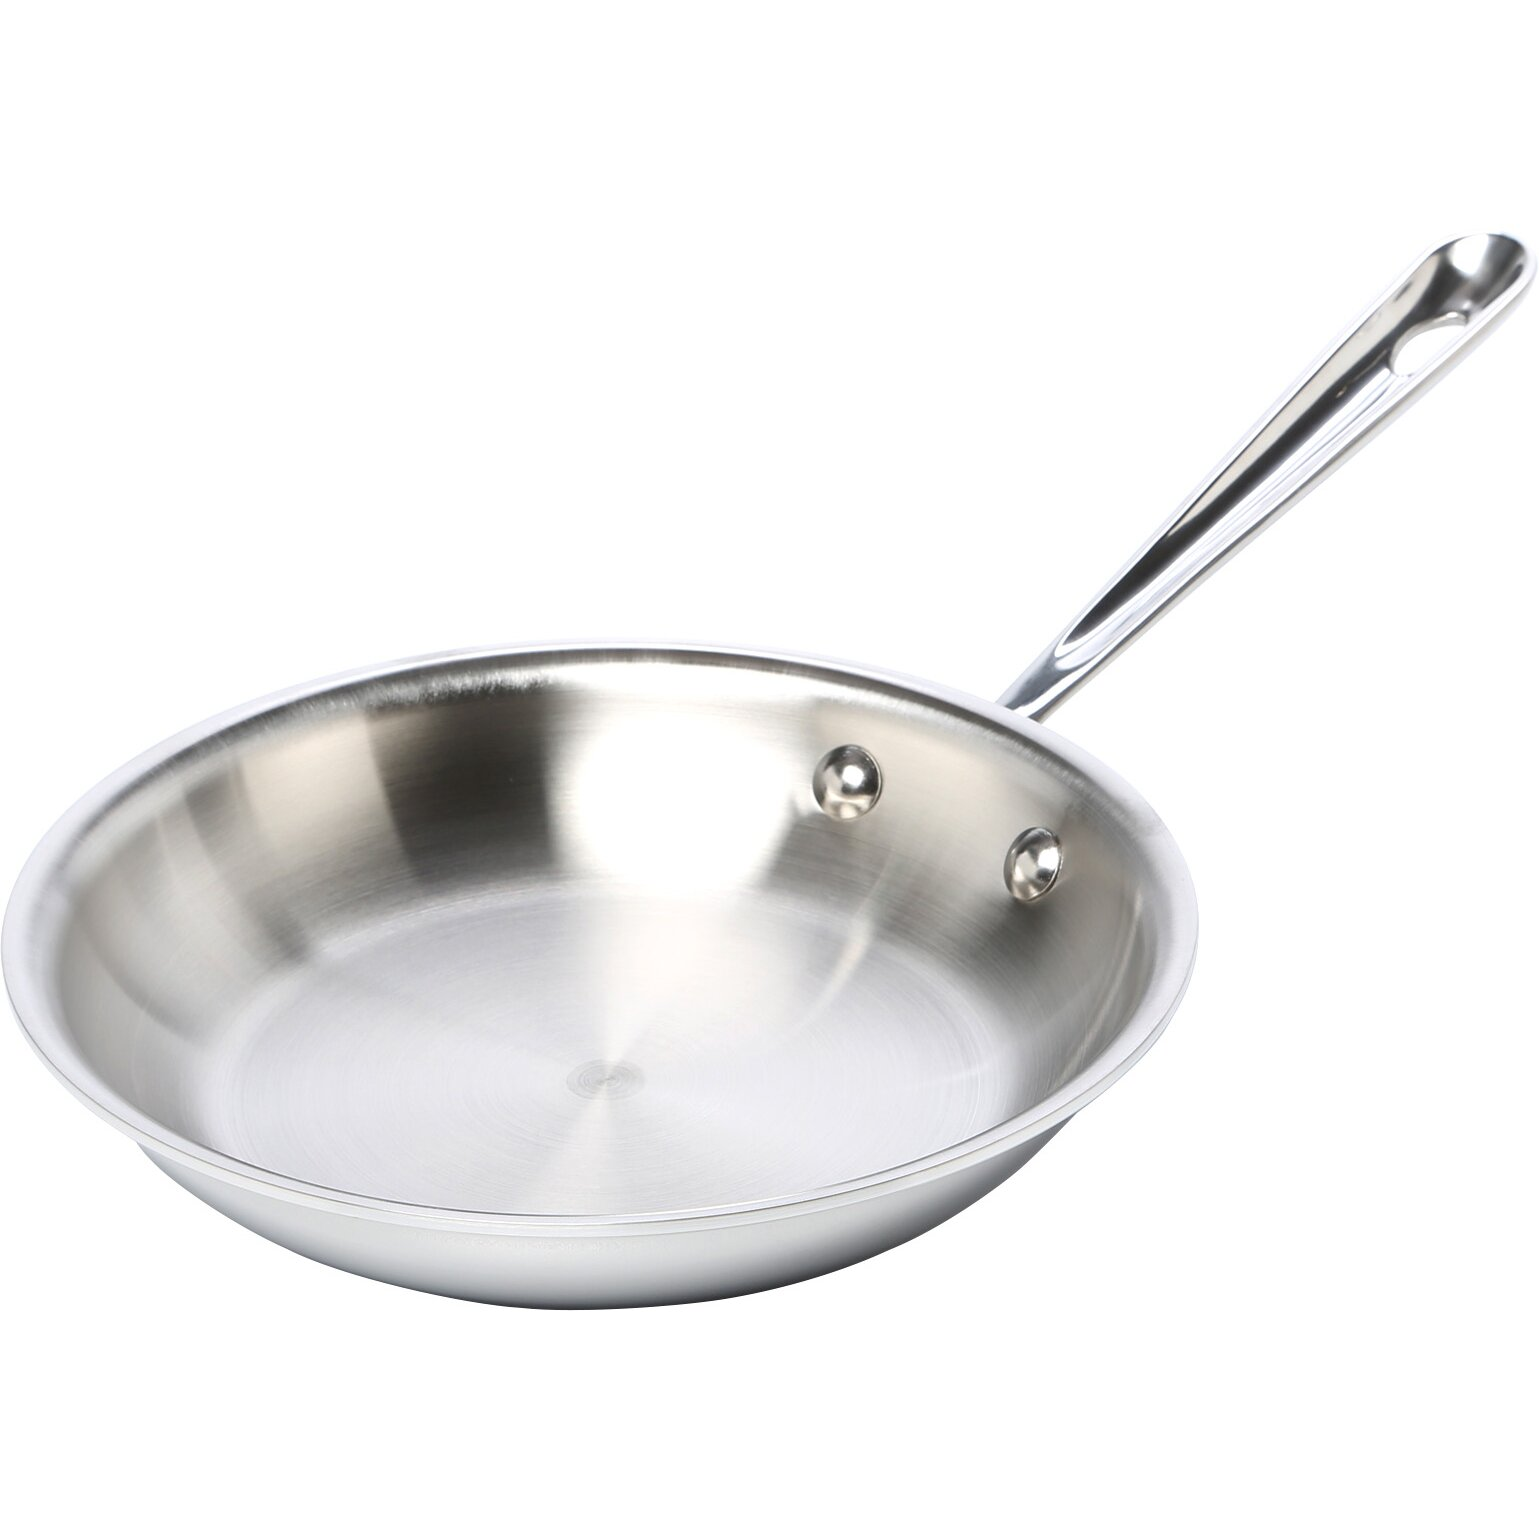 "16"" Aluminum-Clad Stainless Steel Fry Pan with Helper Handle 